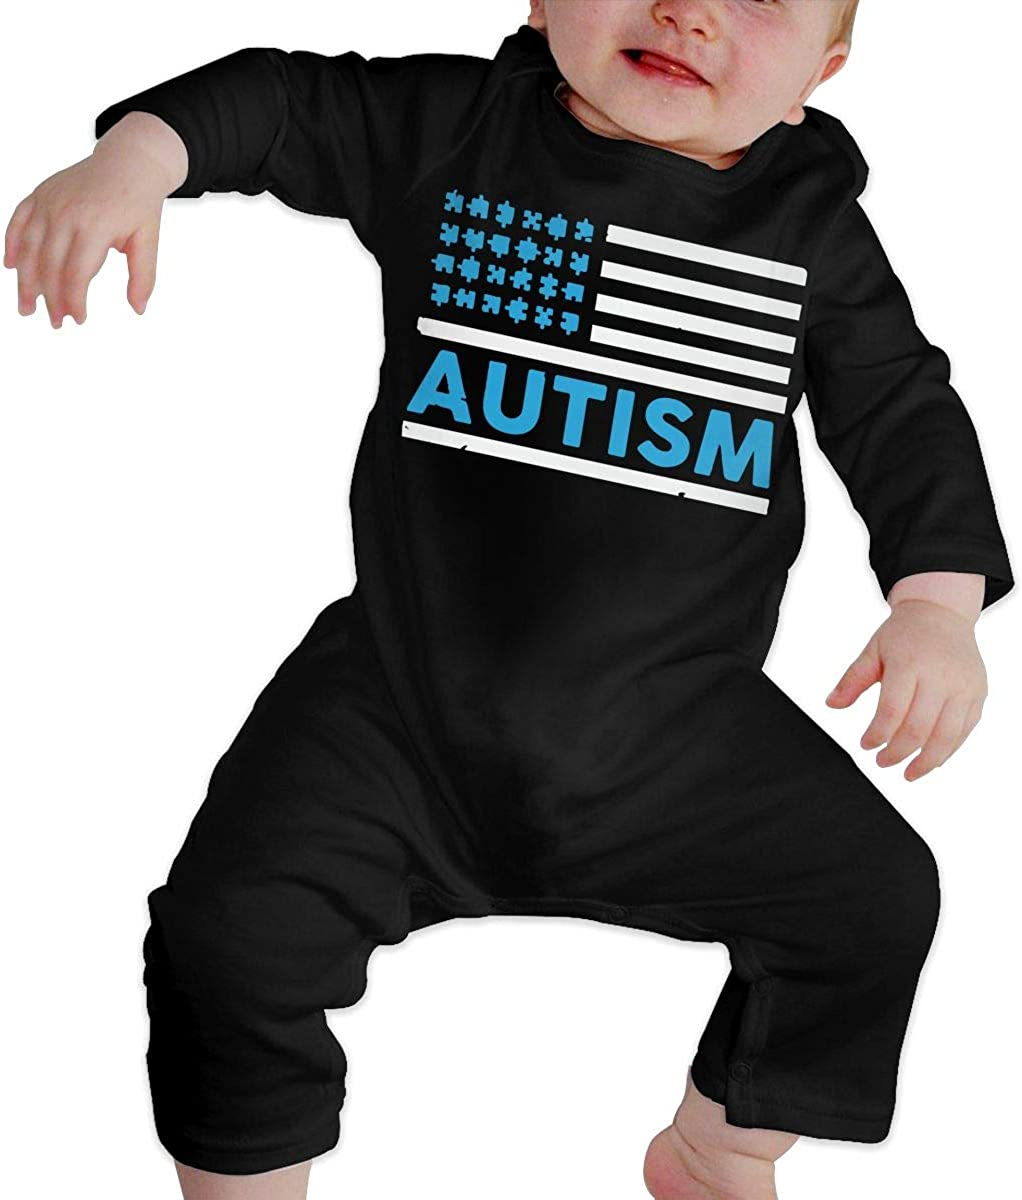 Autism Flag Organic One-Piece Kid Pajamas Clothes BKNGDG8Q Newborn Baby Boy Girl Romper Jumpsuit